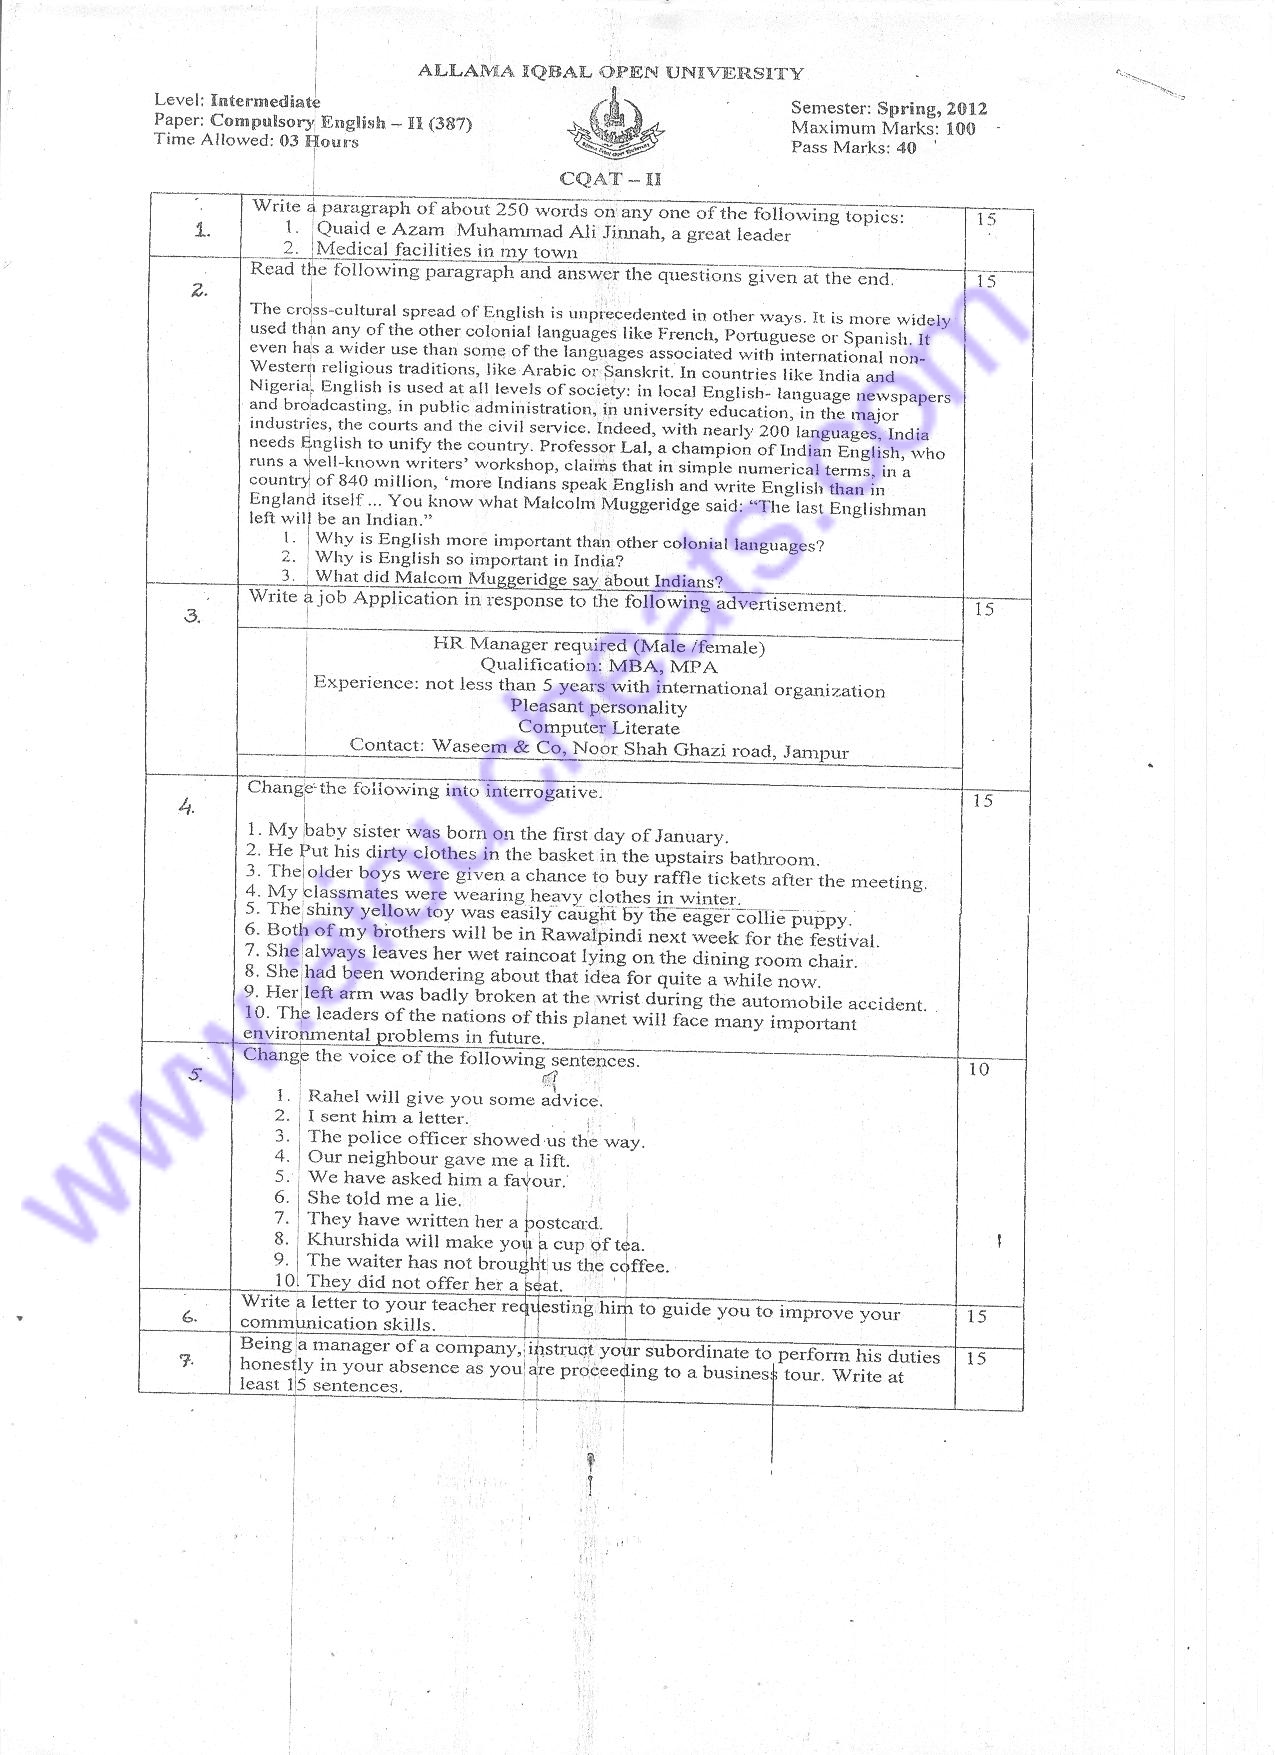 387 old paper of spring 2012 aiou f.a